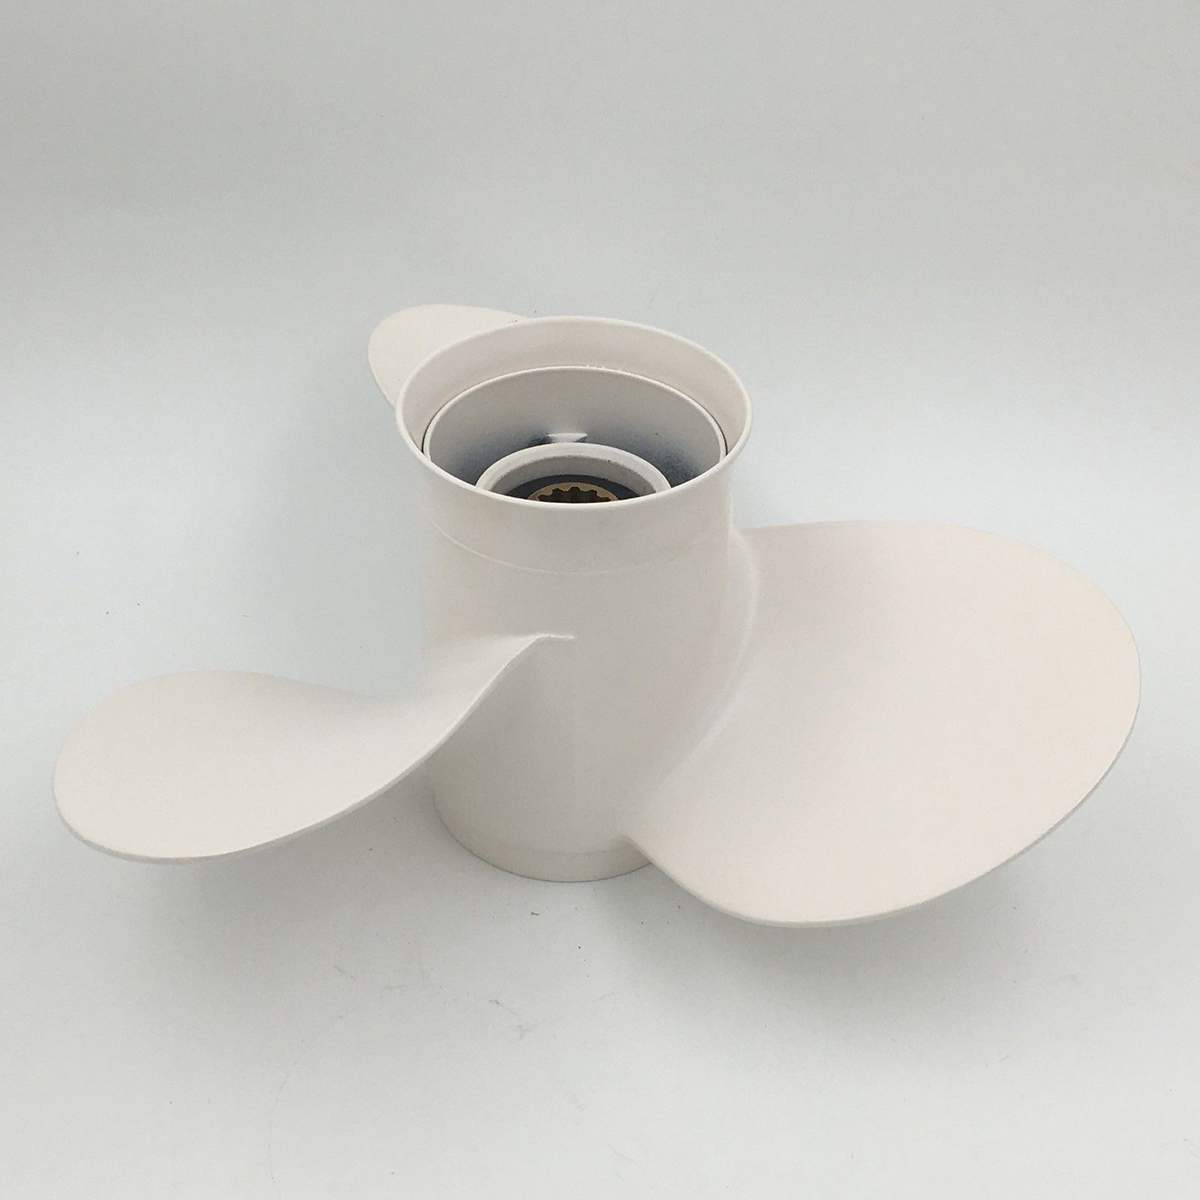 40-50HP Outboard Propeller 11 1/8 X 13-G For Yamaha 40-60HP 69W-45945-00-EL Marine Propeller Boat Parts & Accessories Aluminum